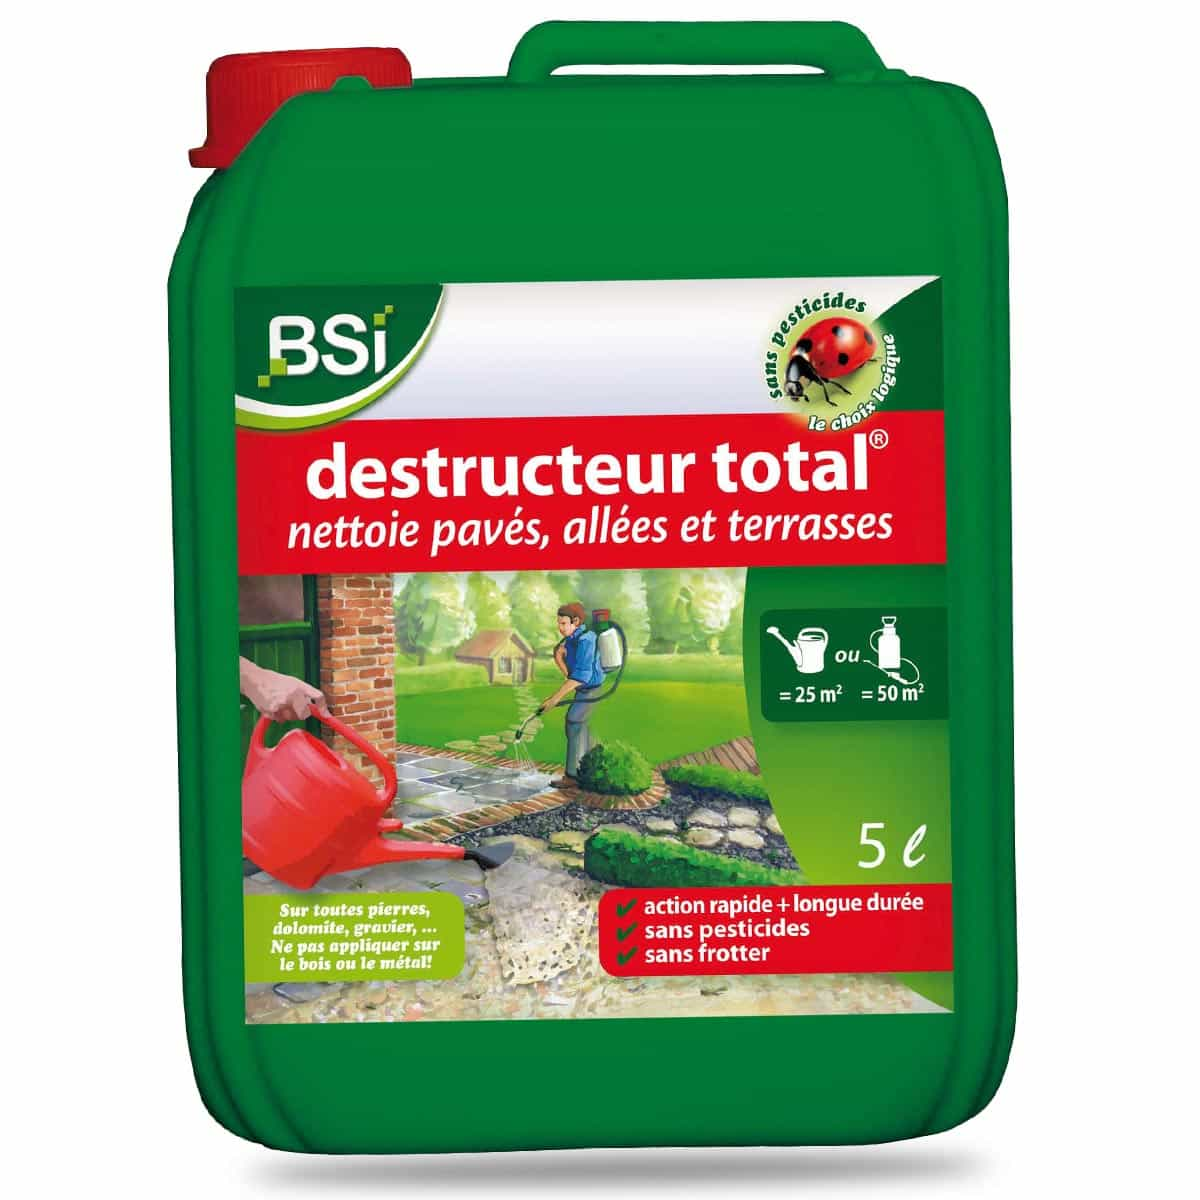 Desherbant Naturel Tres Efficace Destructeur Total 5l Nettoyage Dalles Et Terrasses